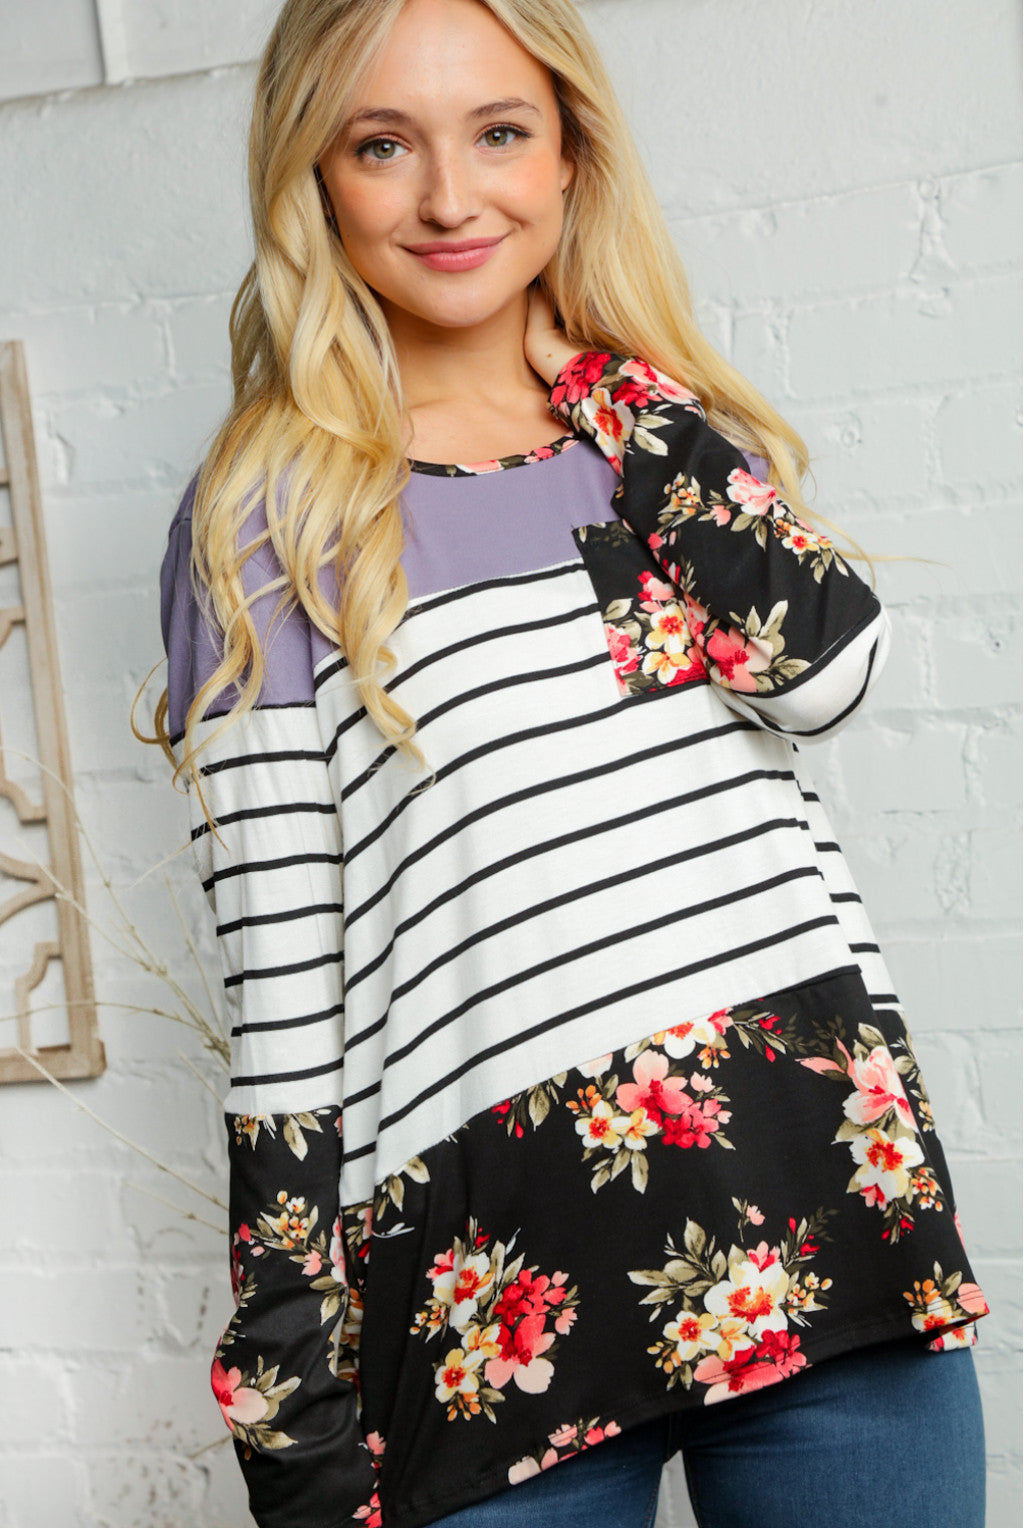 Floral & Stripe Mix Contrast Pocket Tee!